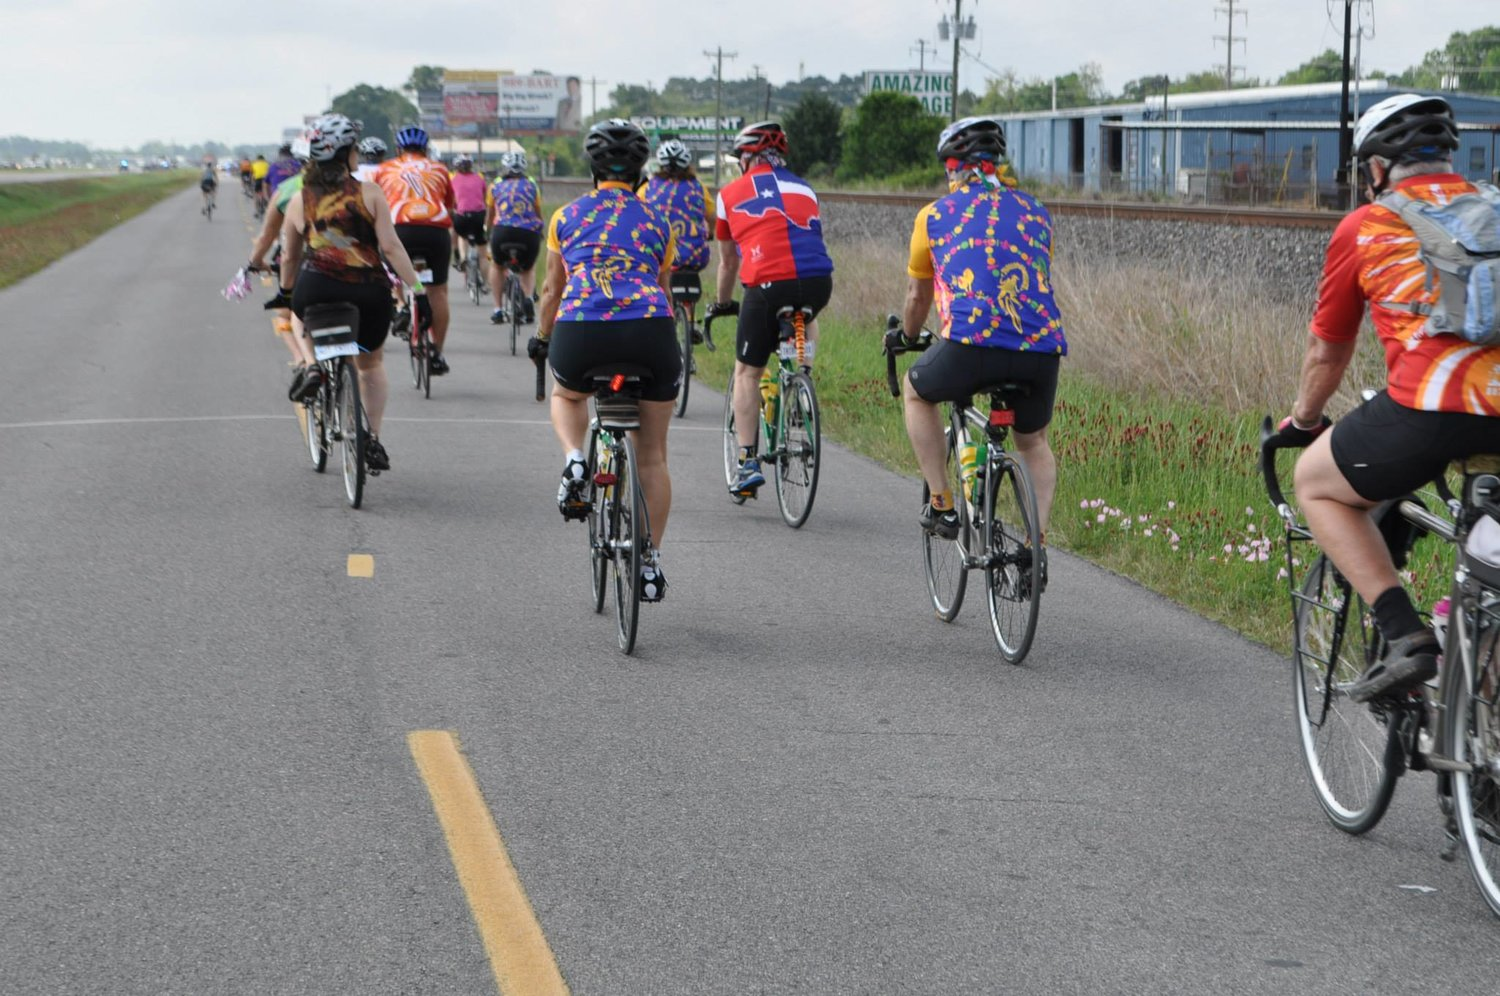 2019.04.25 Thursday — CYCLE ZYDECO - Louisiana s Cajun   Creole Cycling  Festival 23ed871e2